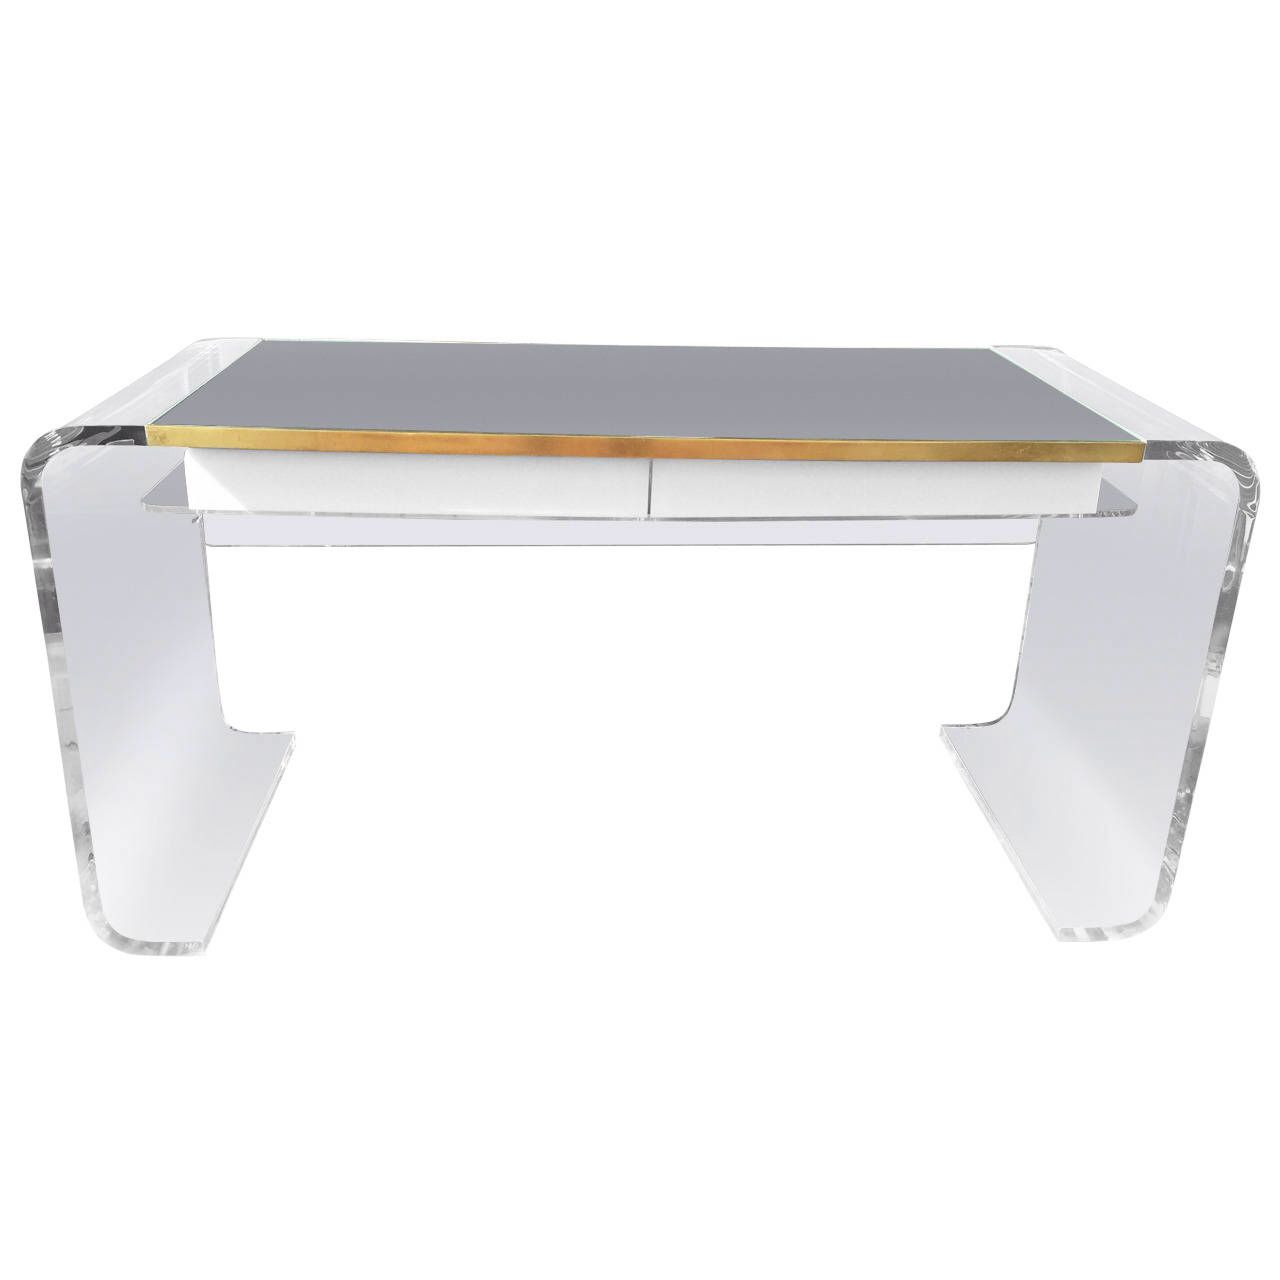 OFFICE DESK: Outrageous Vintage Lucite Waterfall Desk